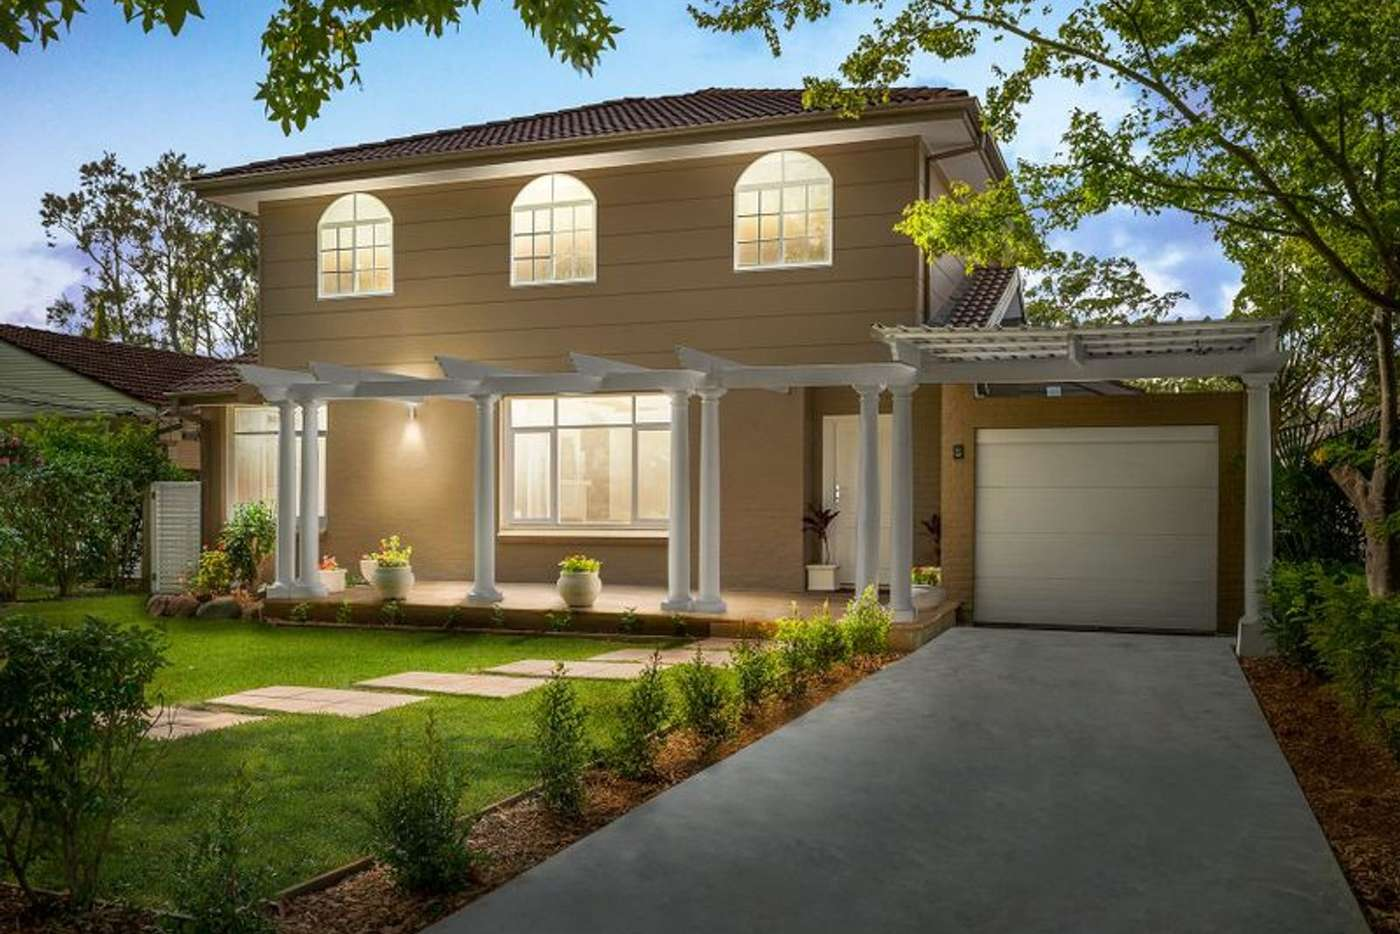 Main view of Homely house listing, 8 Paul Avenue, St Ives NSW 2075